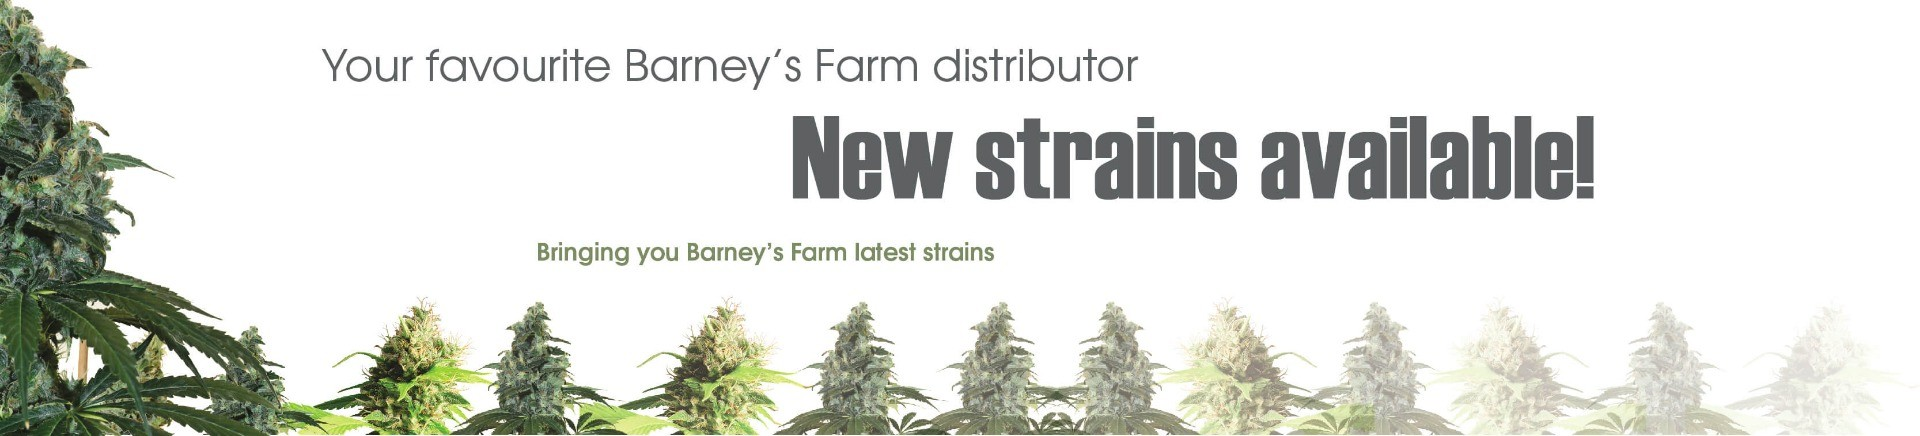 #1 Barneys Farm distributor, proudly bringing you your favourite strains